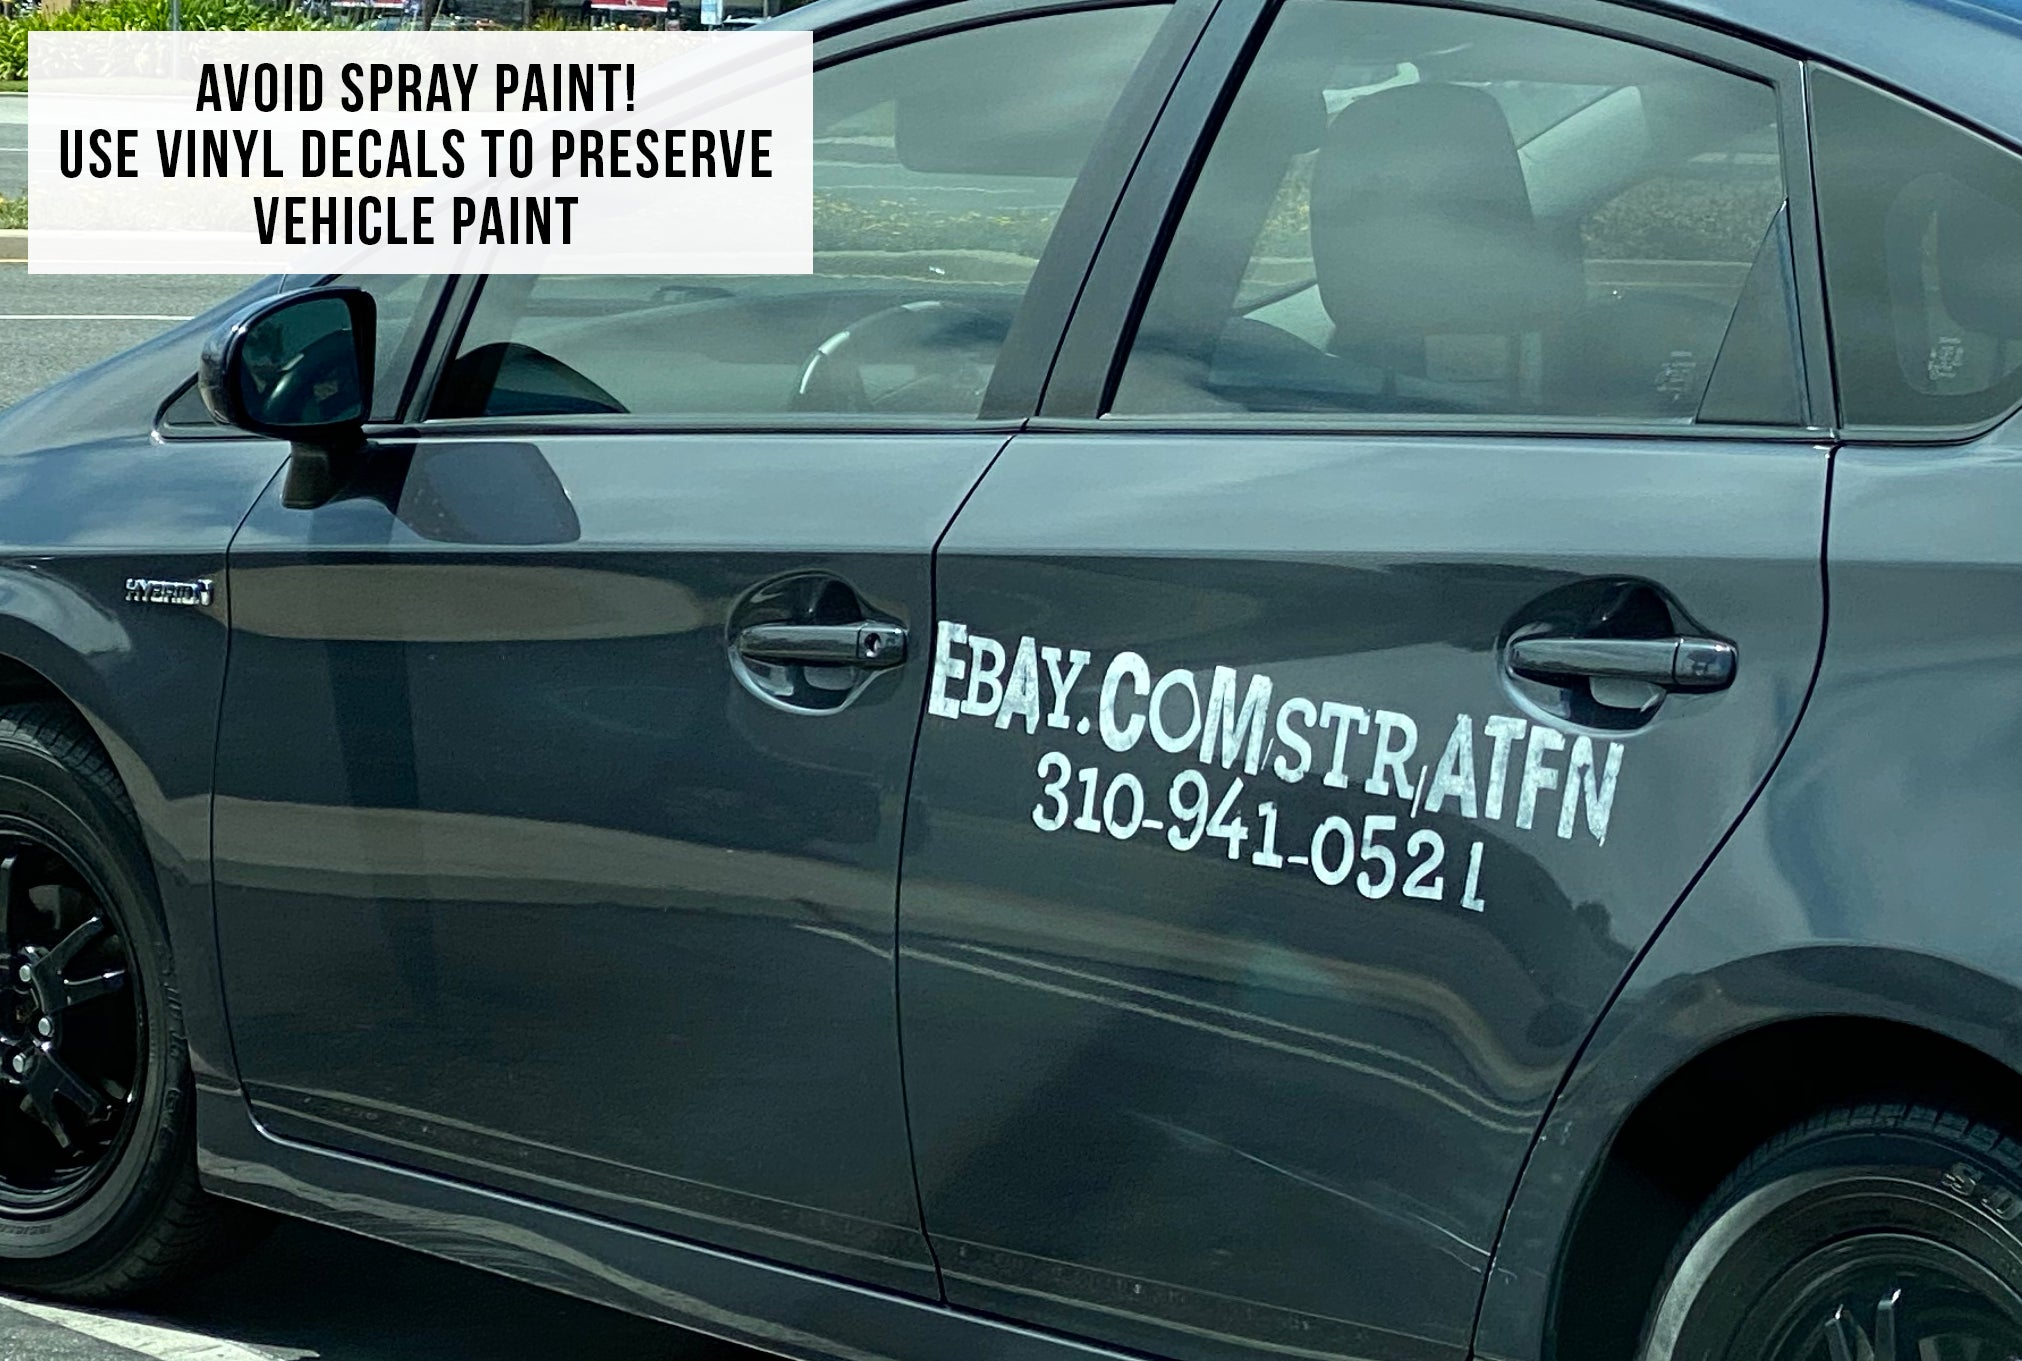 don't use spray paint for vehicle lettering, use professional decals